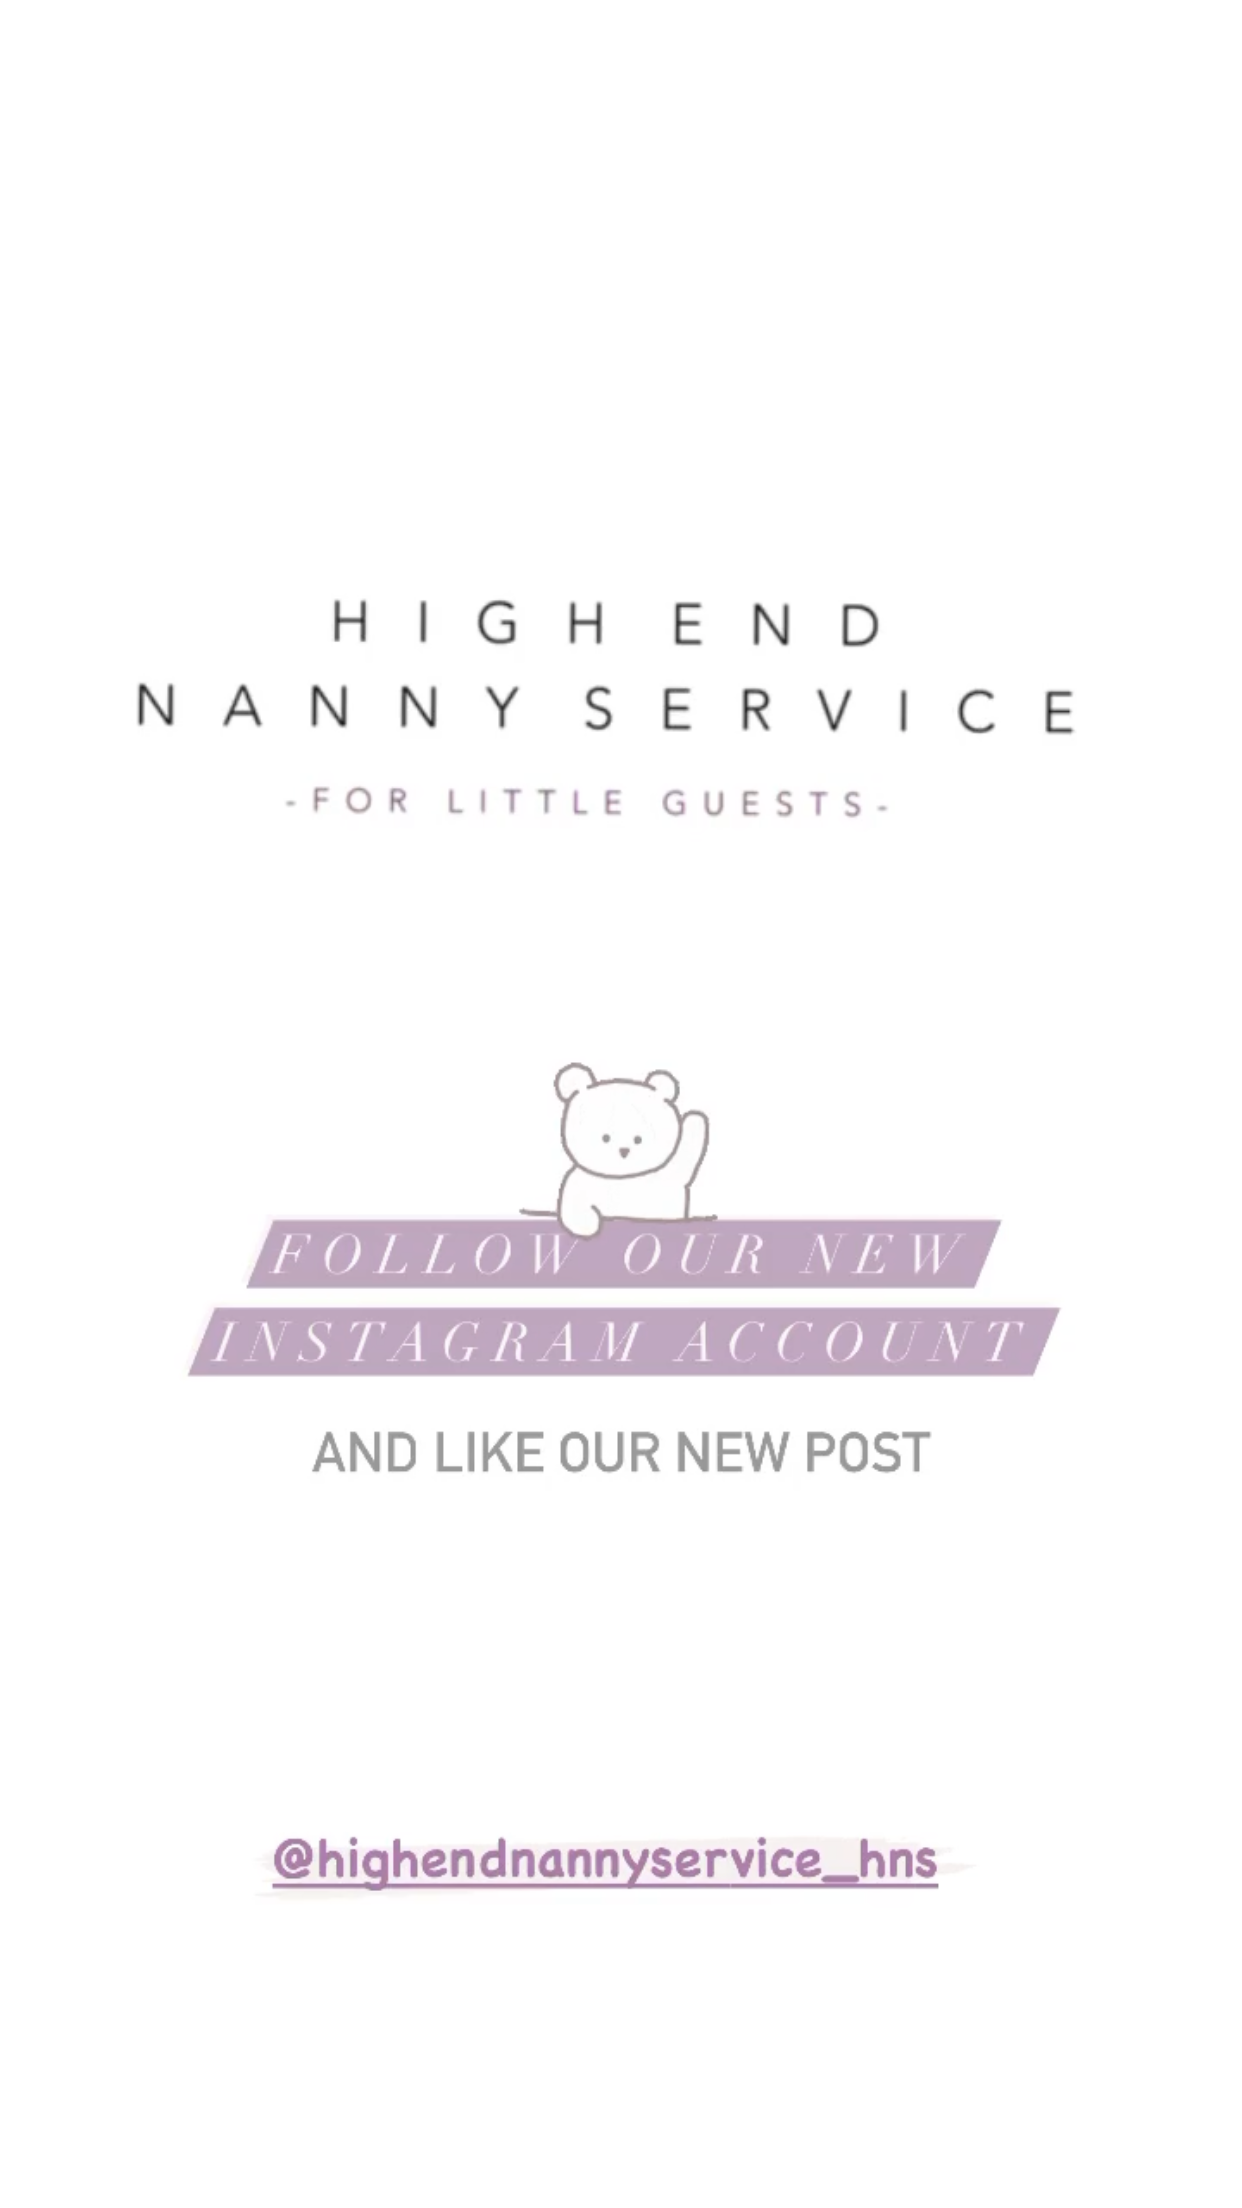 Our new High End Nanny Service Instagram account